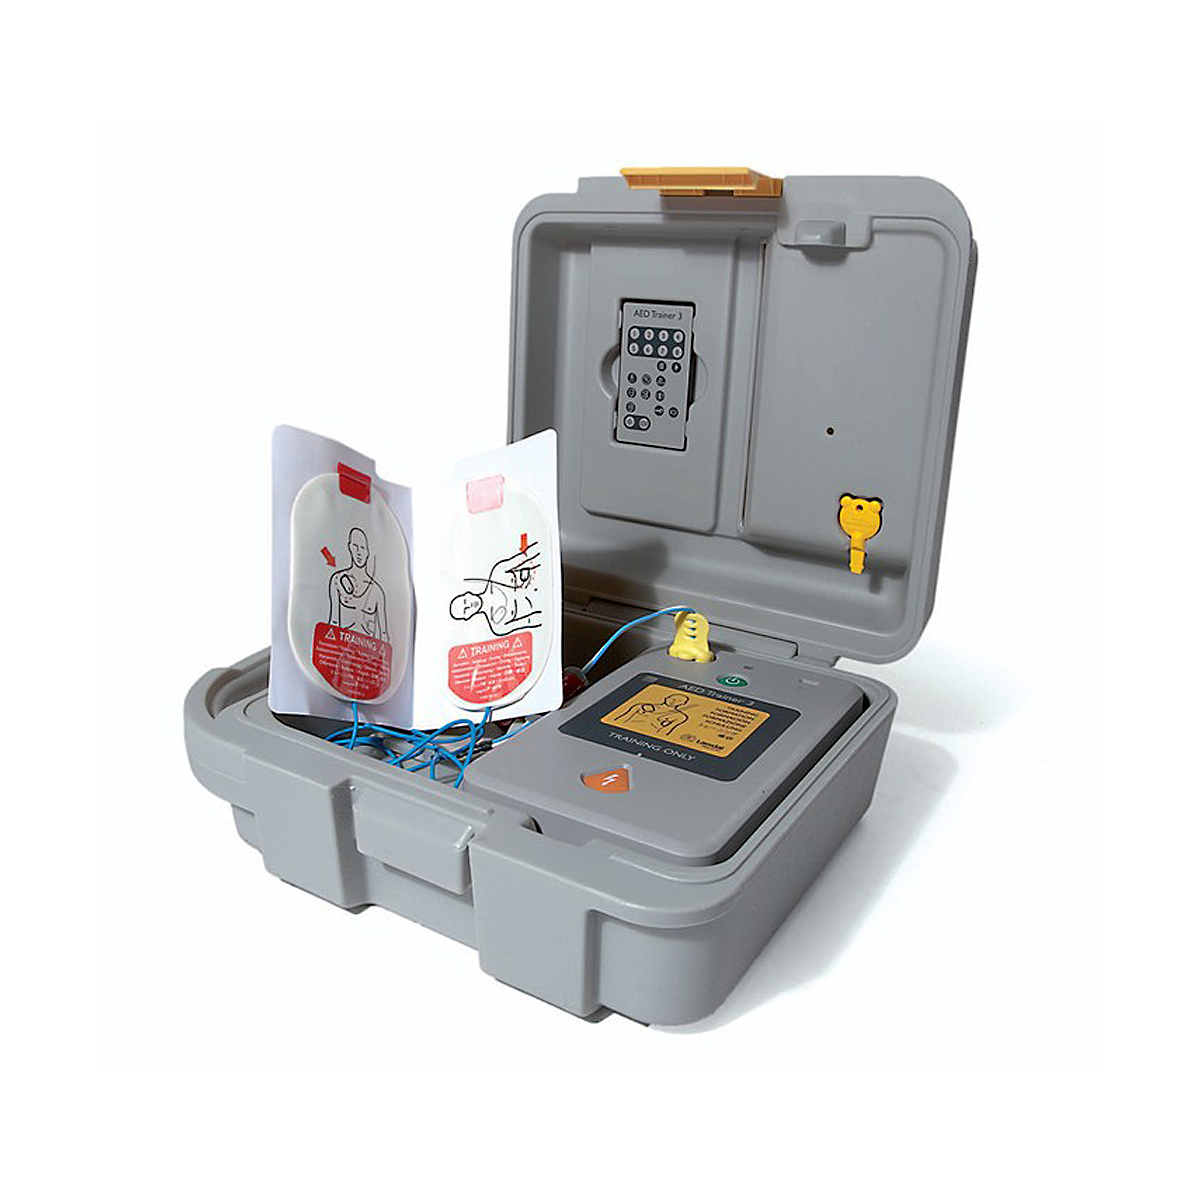 Philips/Laerdal AED Trainer 3